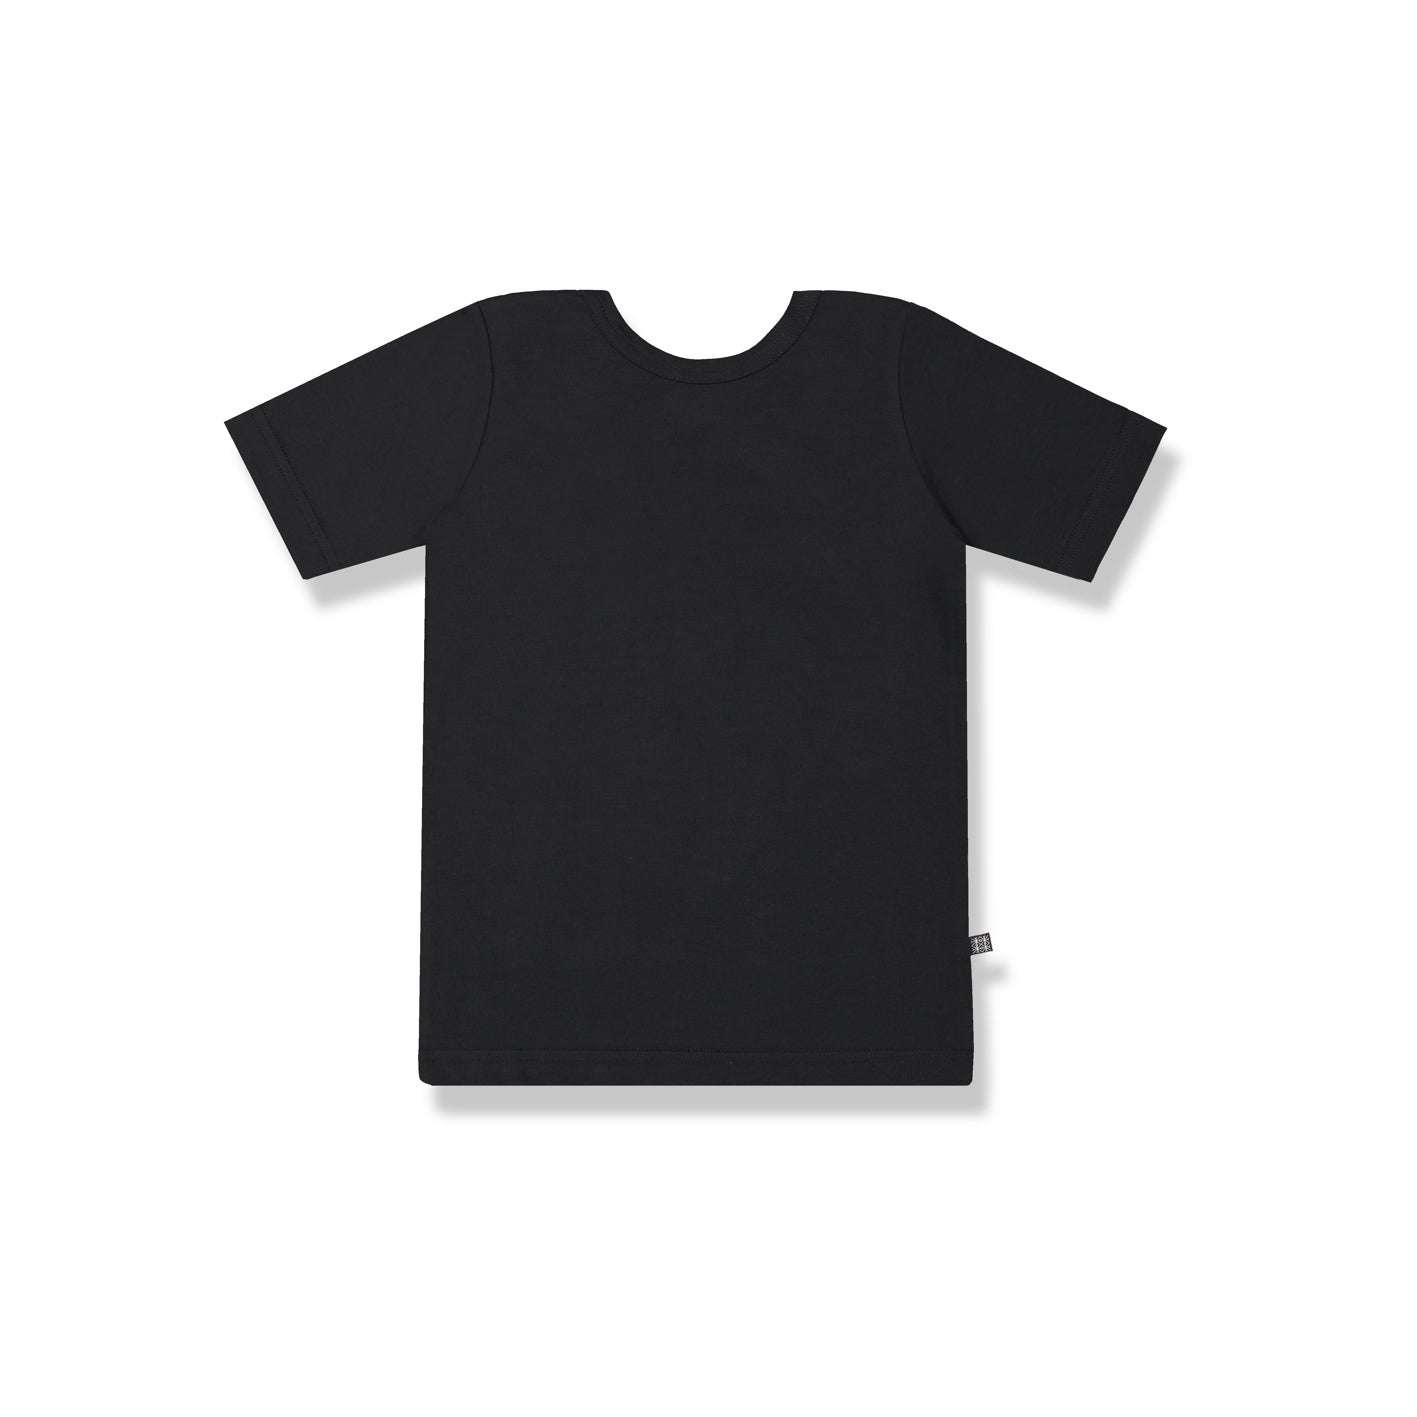 Kaiko cross tee, black